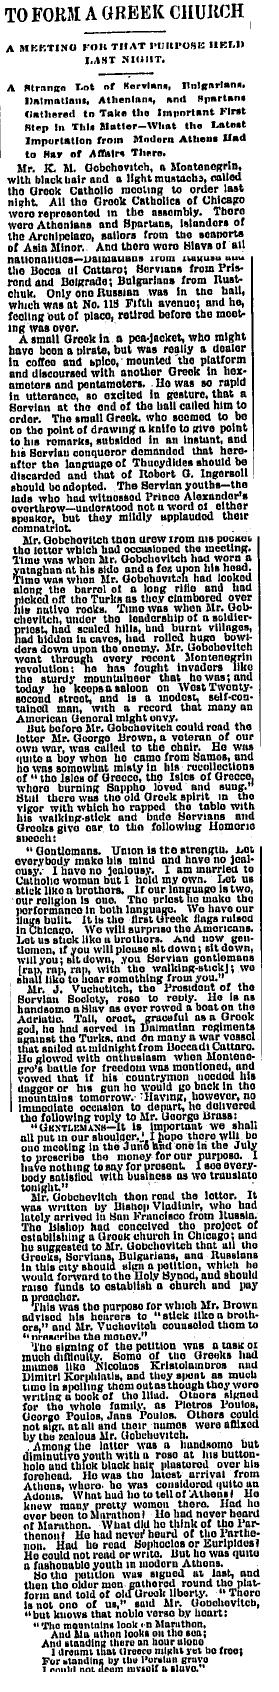 1888-05-14 - Chicago pan-Orthodox parish (Chicago Tribune)